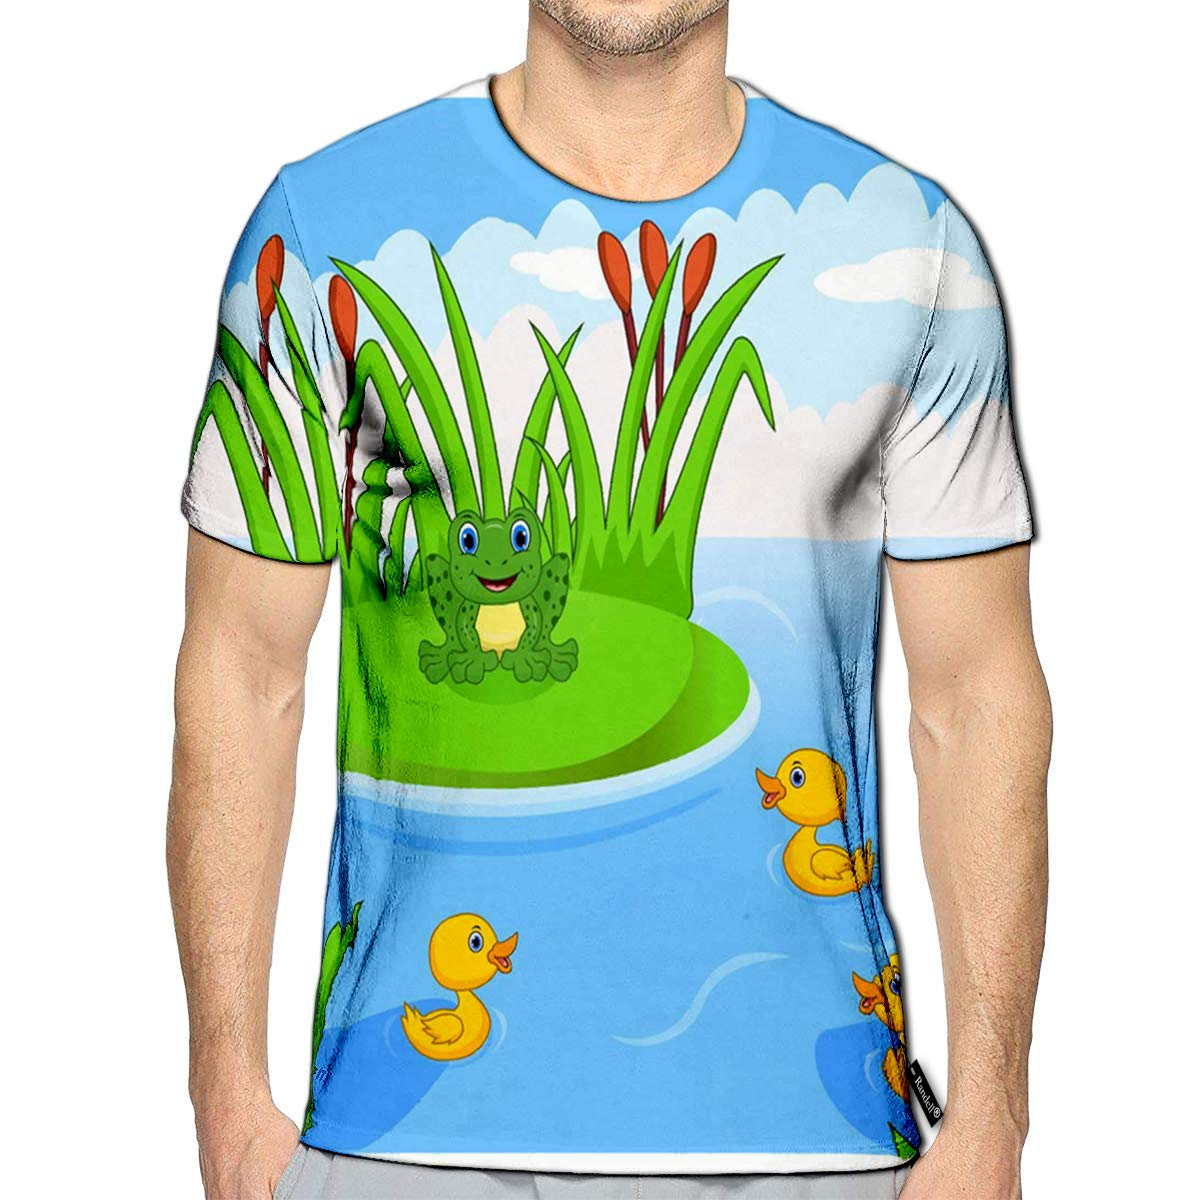 3D Printed T-Shirts Frog and Four Little Cute Ducklings in The River Short Sleev